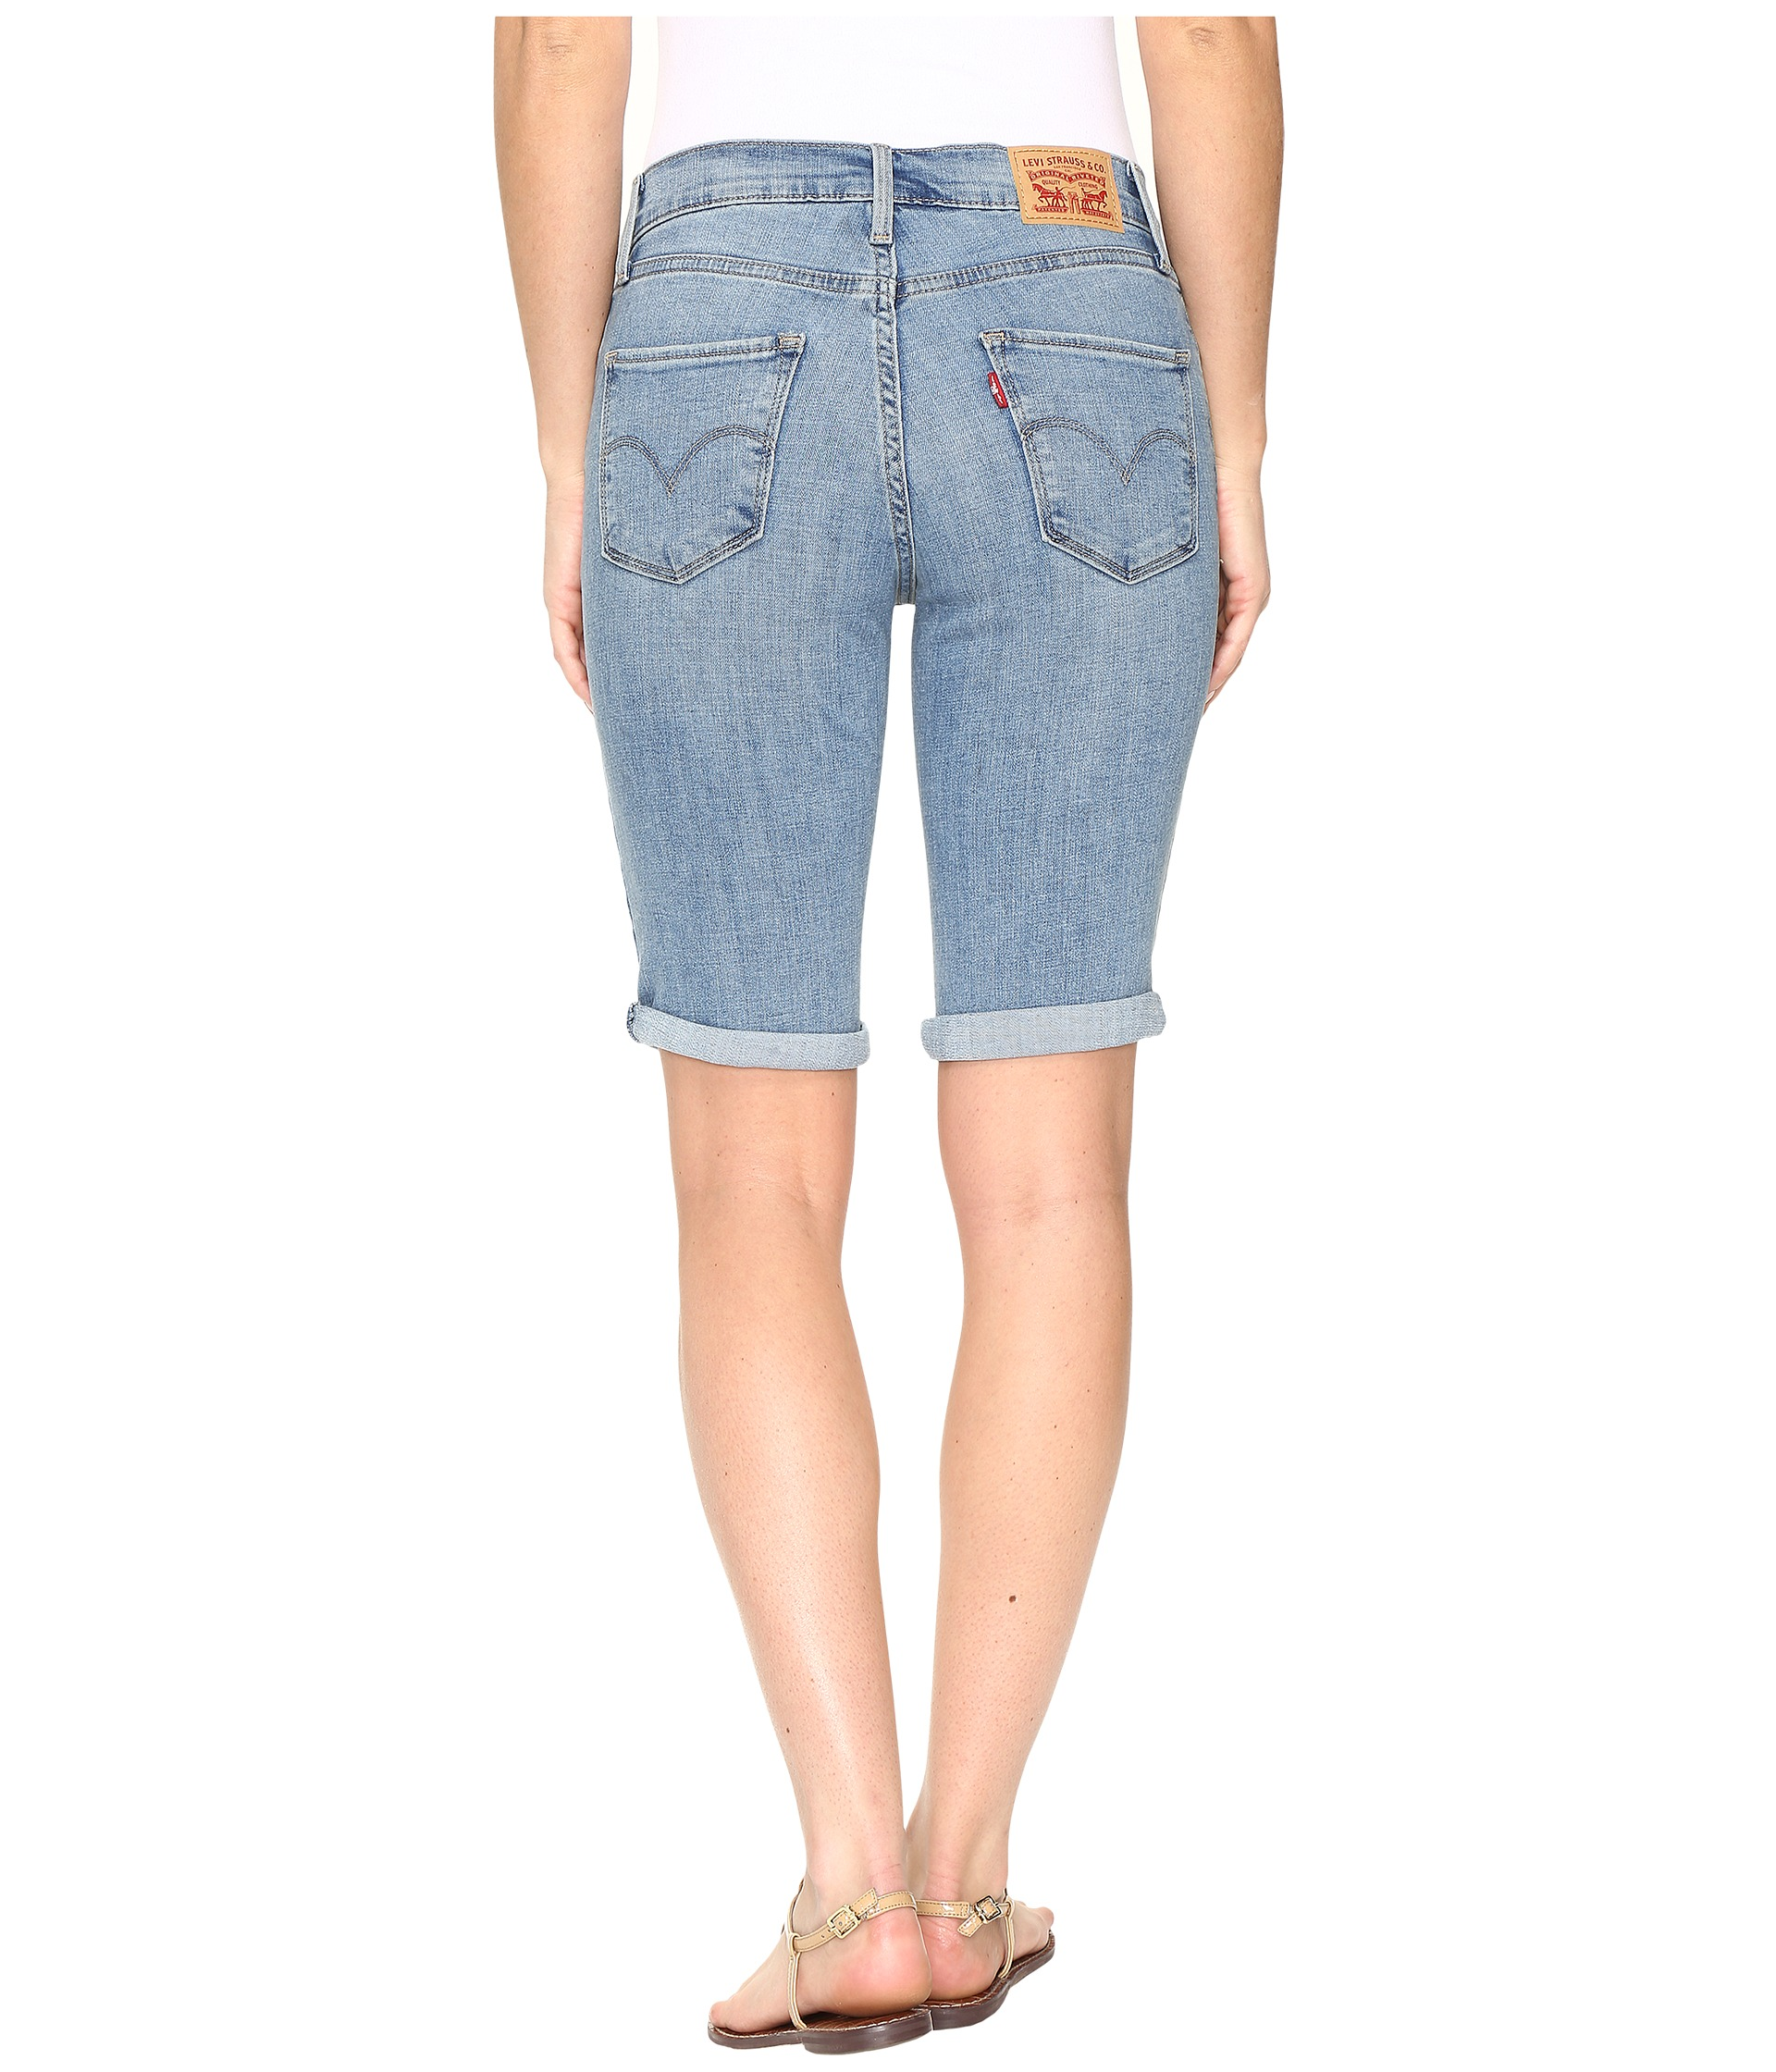 With these classic bermuda shorts for women from Old Navy the possibilities are endless for creating multiple stylish outfits. Choose from an array of solid colors and patterns in twill, denim and more. The length of these women's bermuda shorts falls just above the knee, accompanied by longer inseams deliver extra comfort.